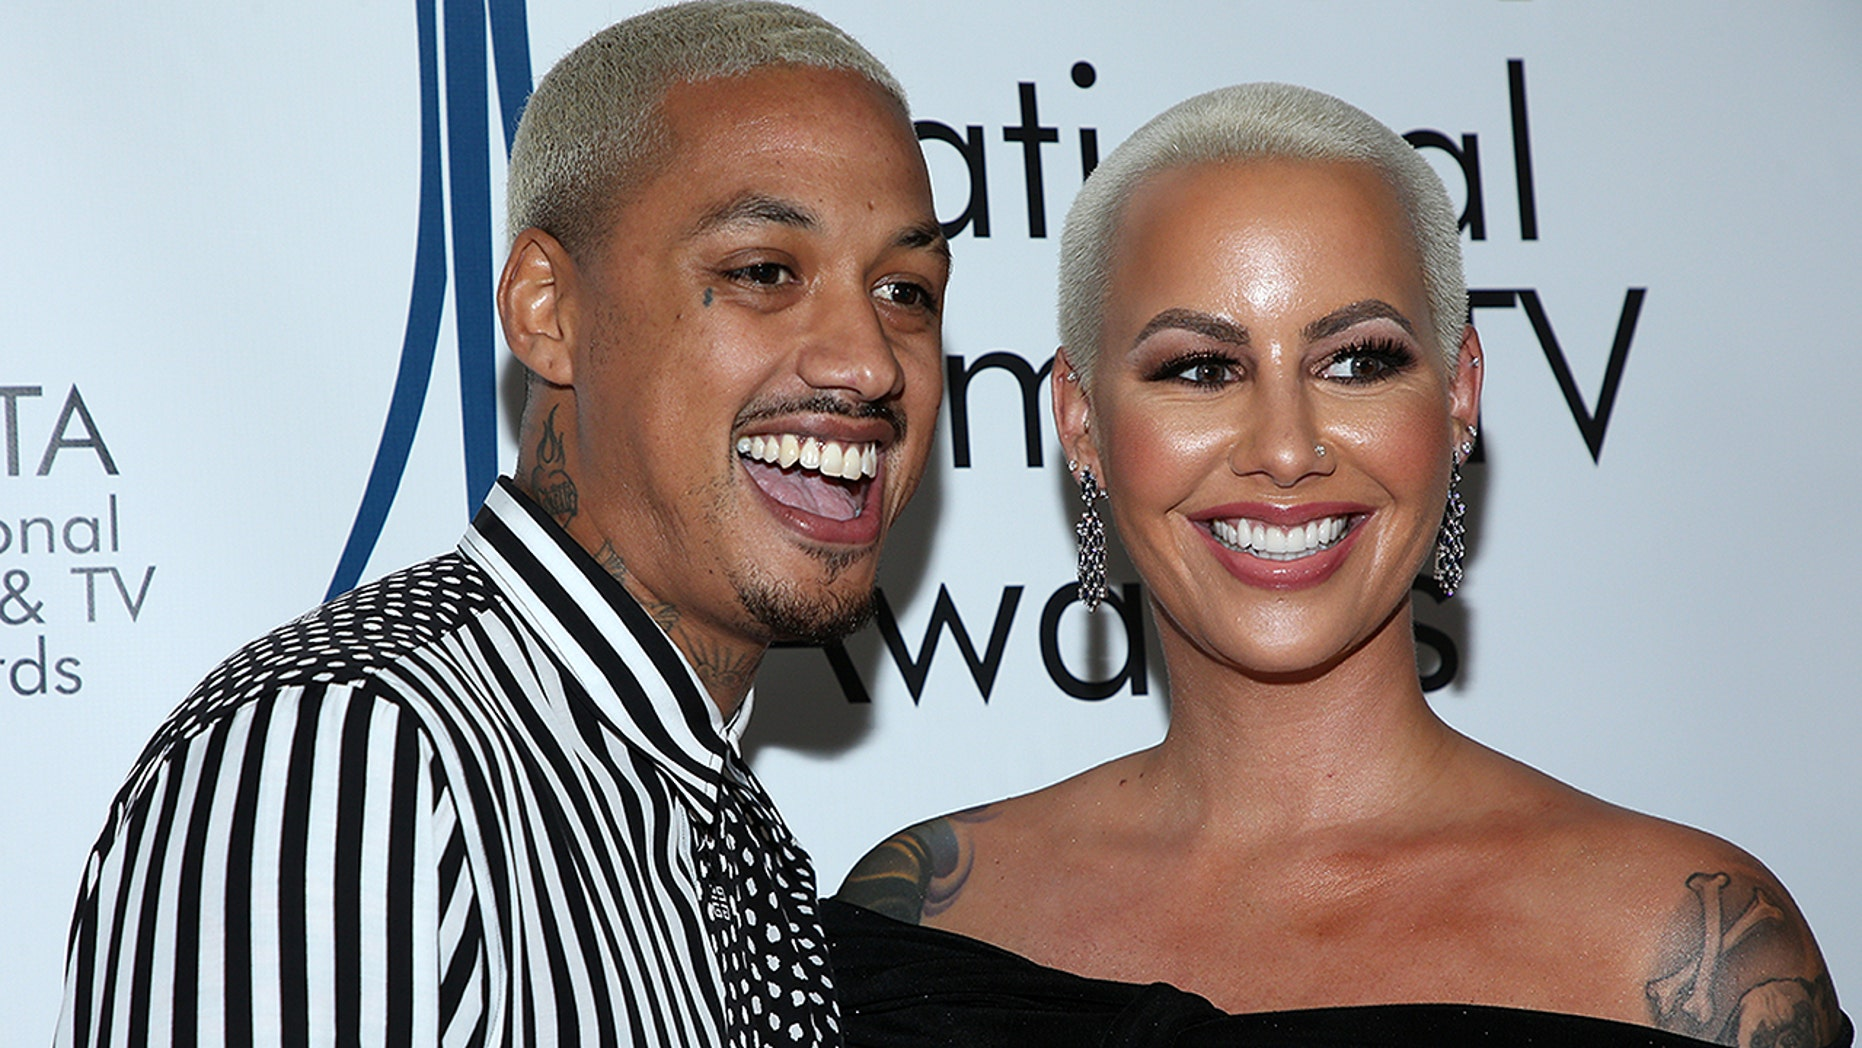 """Alexander """"AE"""" Edwards and Amber Rose attend the National Film and Television Awards Ceremony at the Globe Theatre on Dec. 5, 2018 in Los Angeles."""